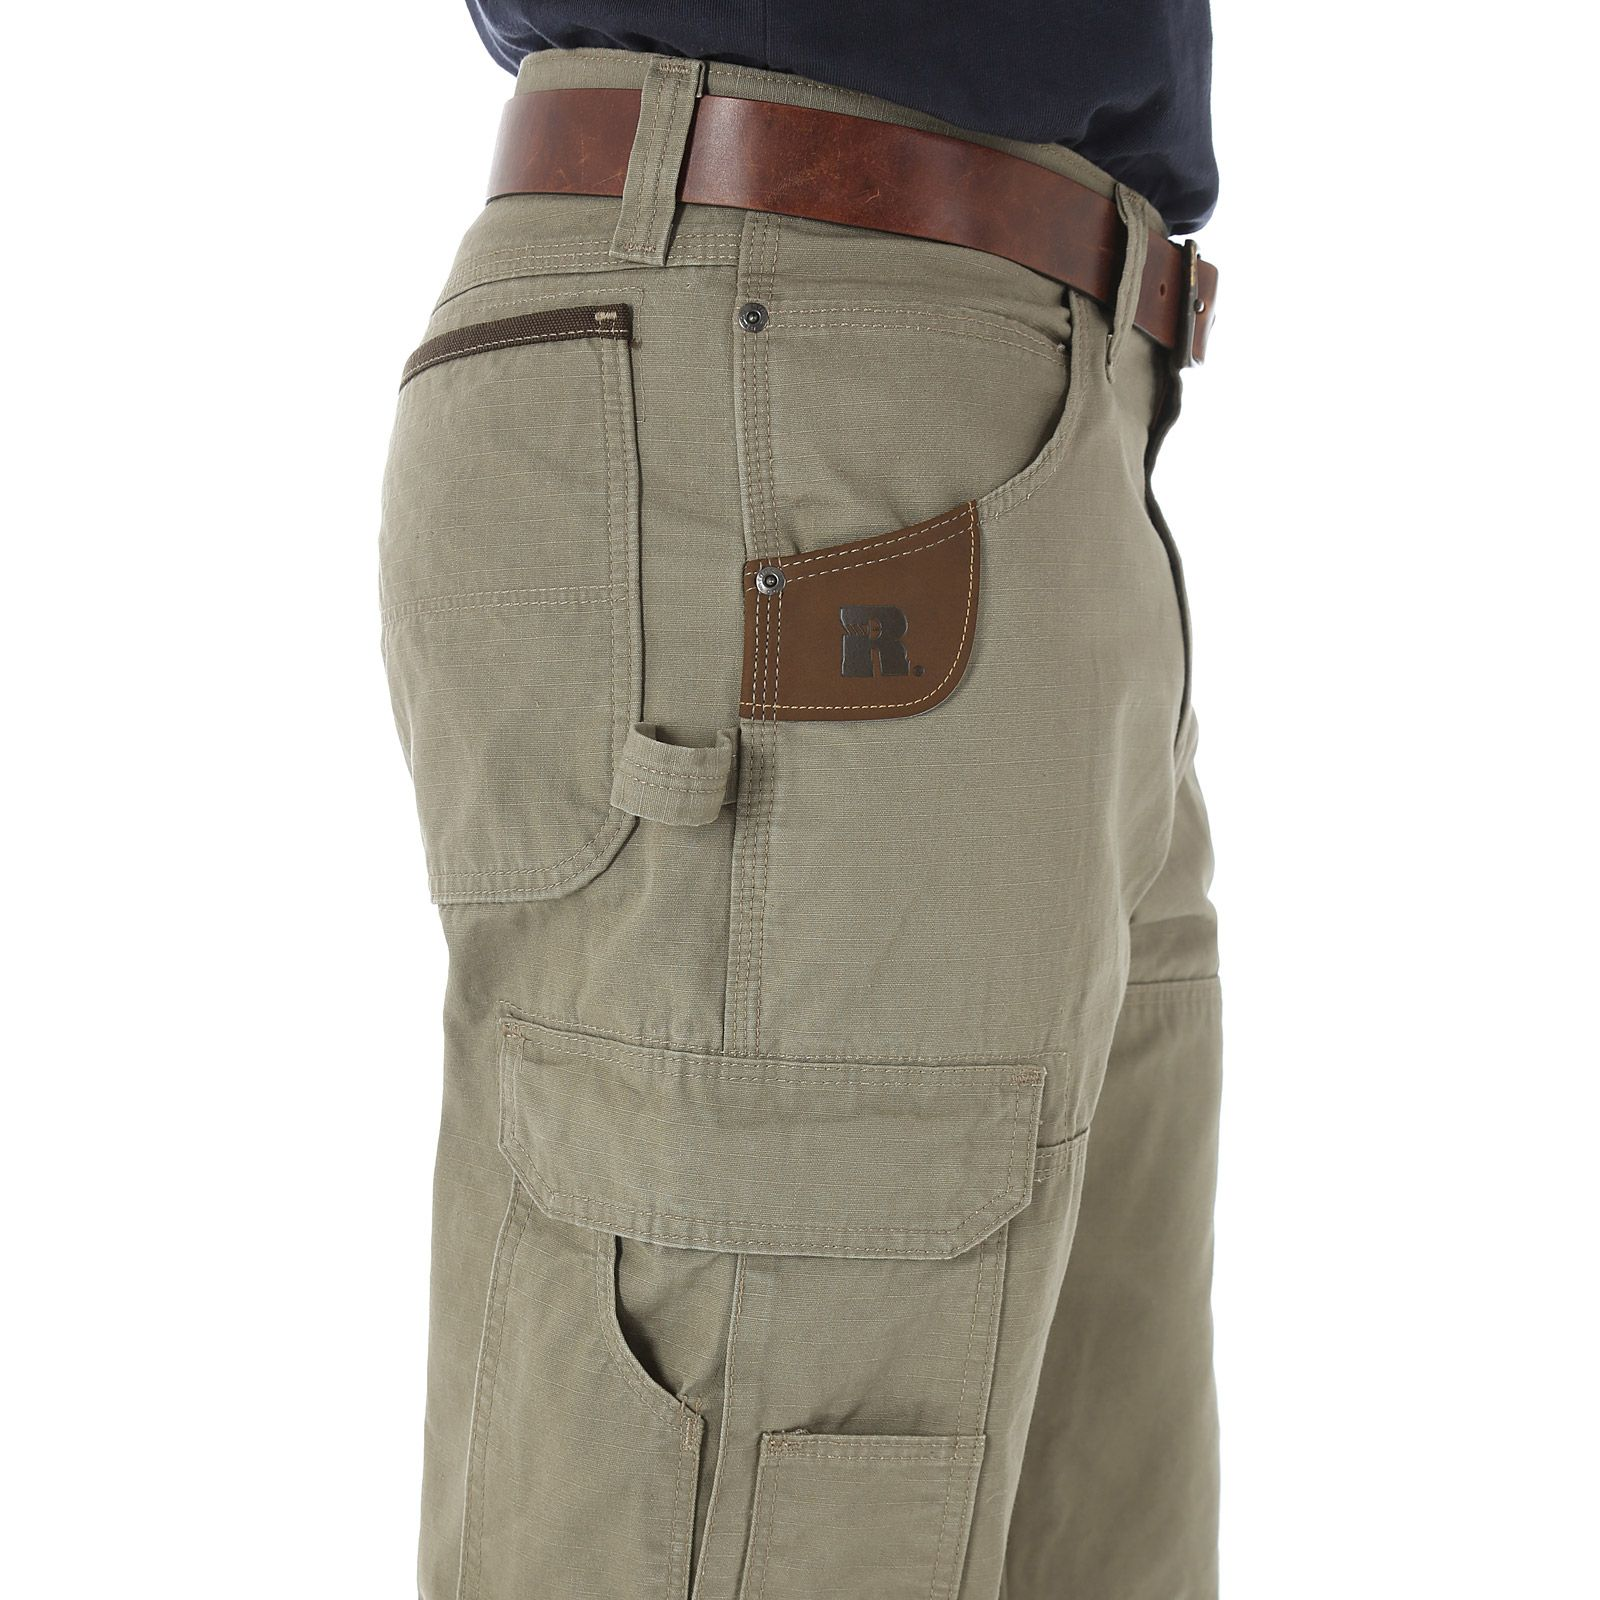 b328f004 Learn about mens pants. Ripstop Ranger Pant. Side cargo pockets with flaps.  Reinforced knees. Right side hammer loop. Leather tape measure  reinforcement.